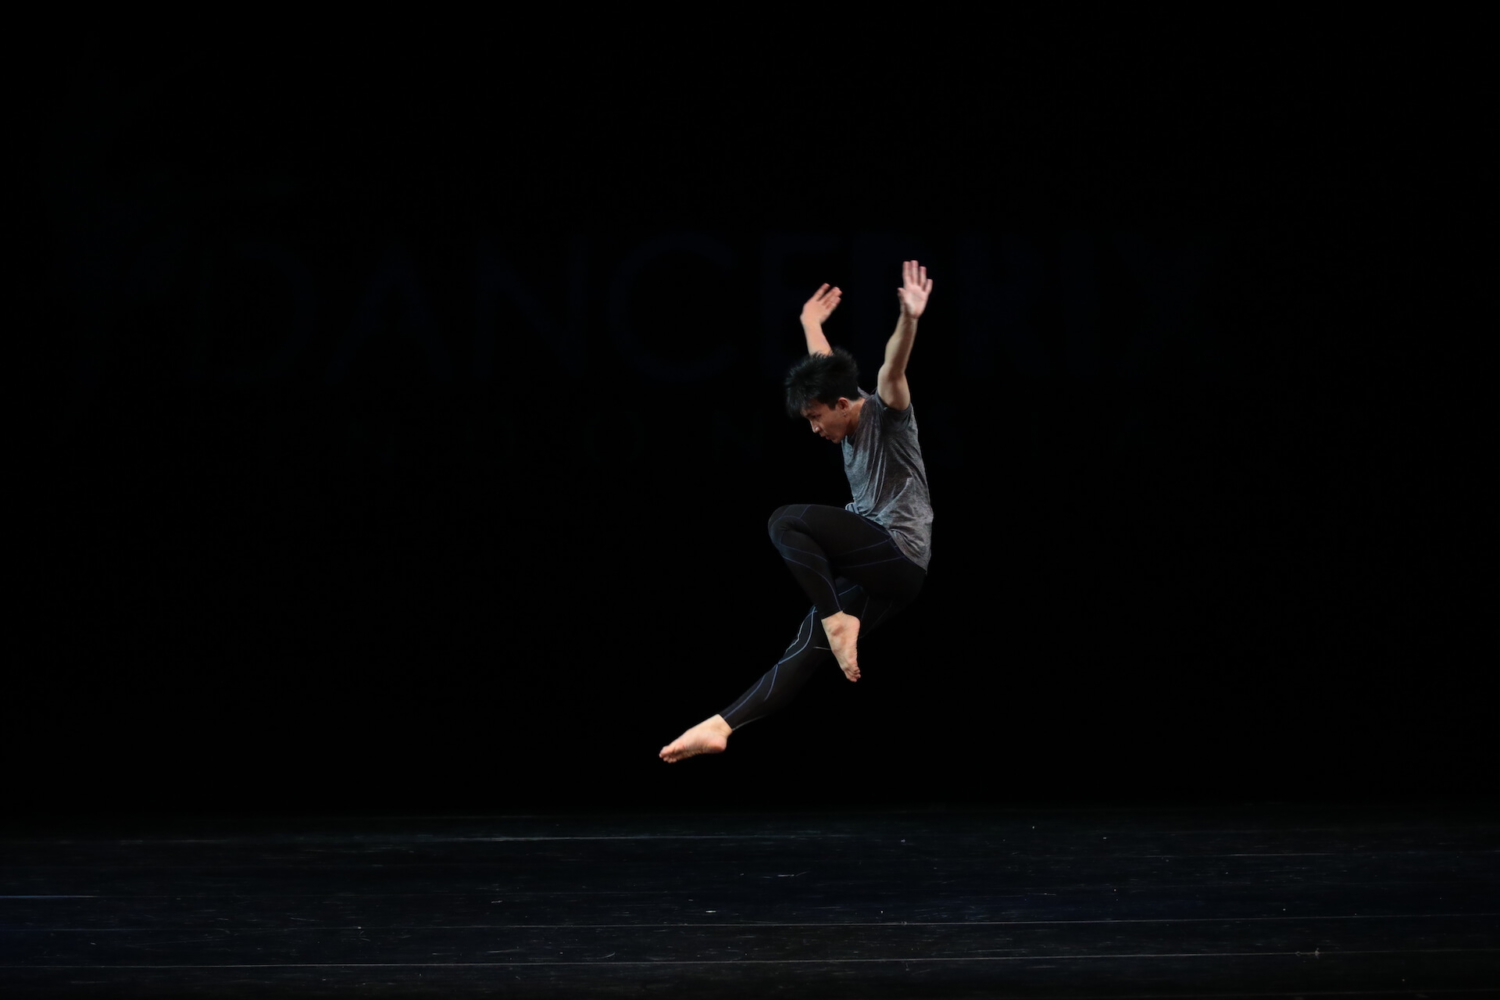 Dance Prix Indonesia 2019 – Contemporary Solo 1st Place, Taufik Ramdani Tohari (Arabesque Ballet Studio)